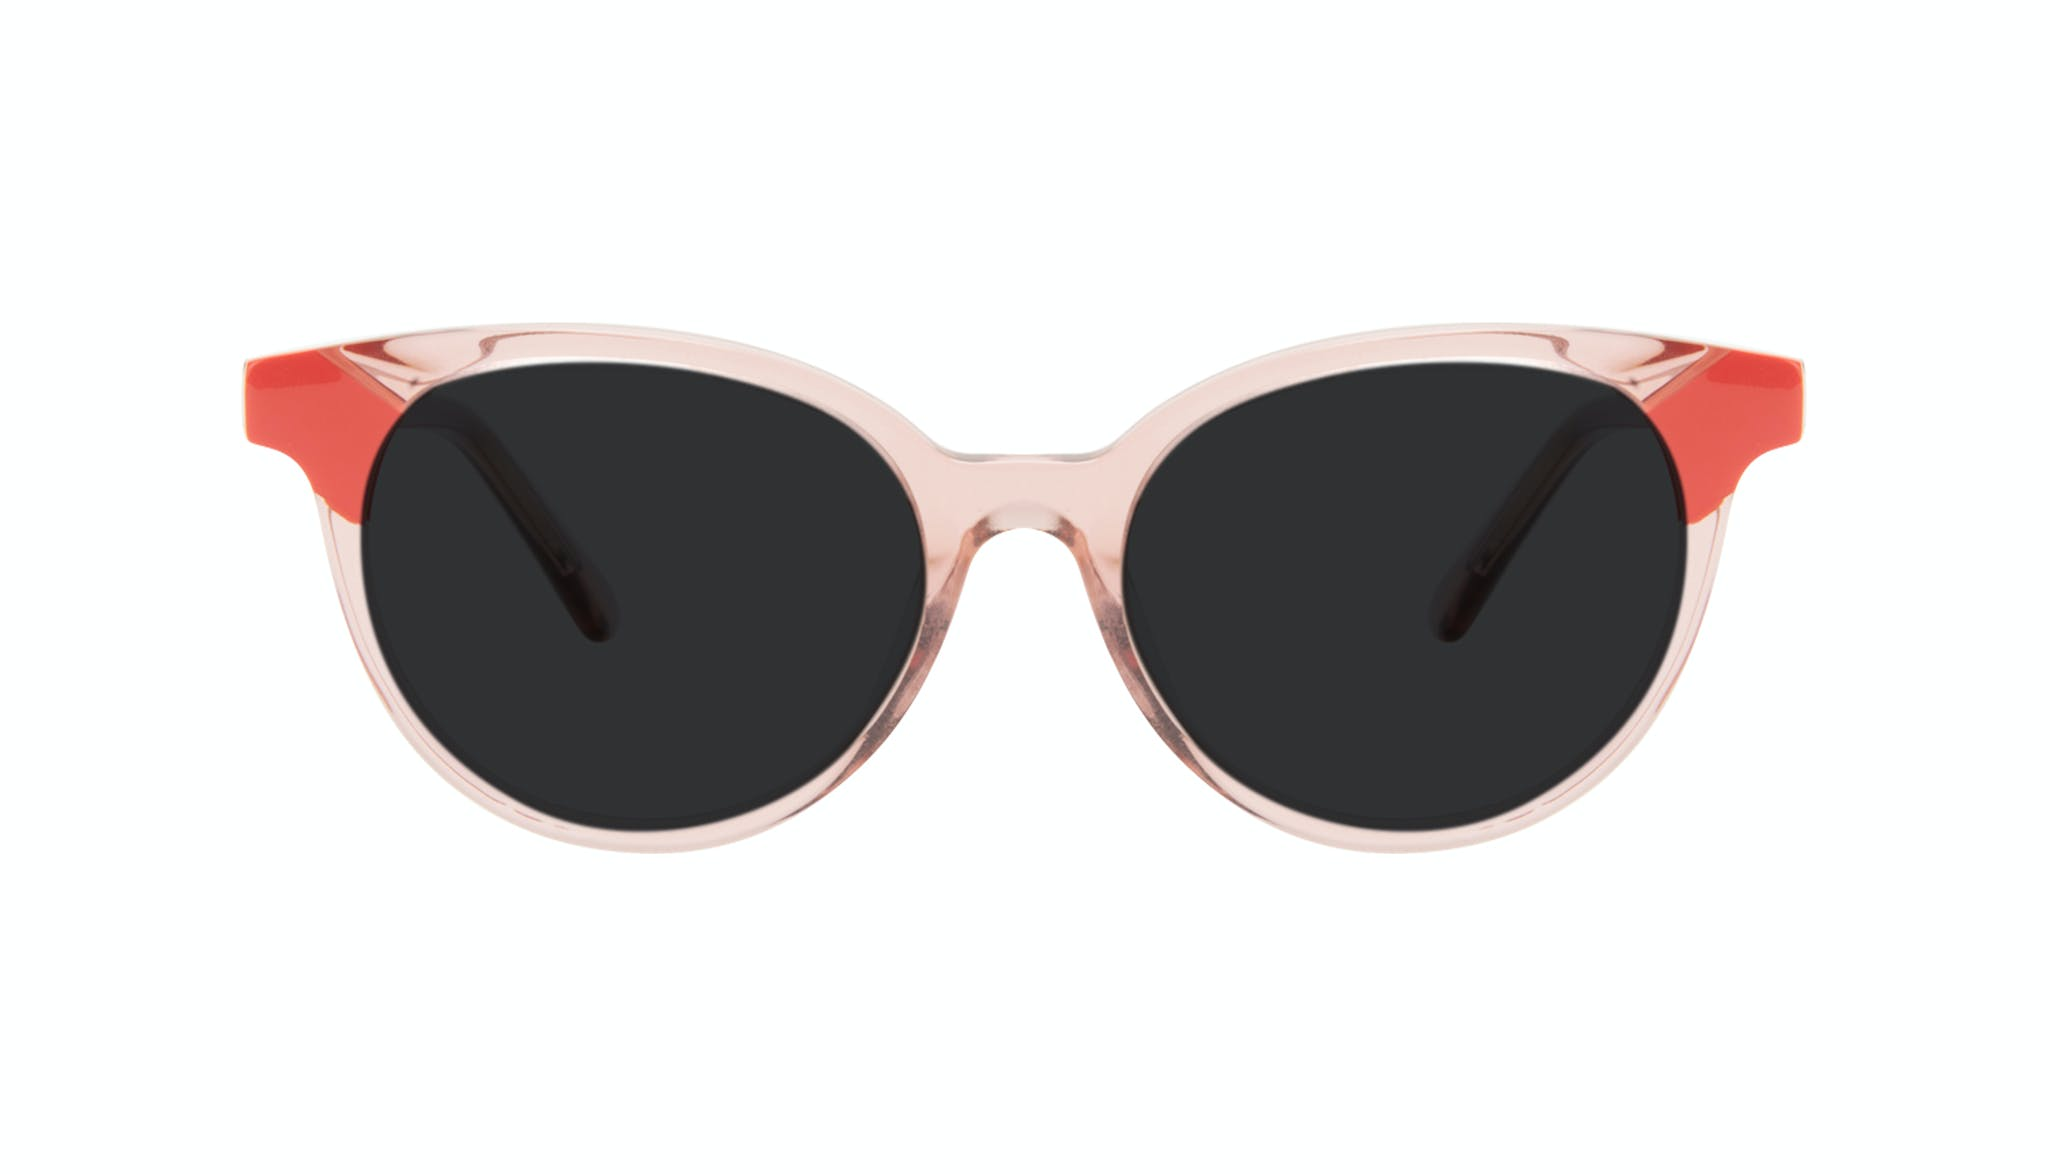 Affordable Fashion Glasses Round Sunglasses Women Bright Pink Coral